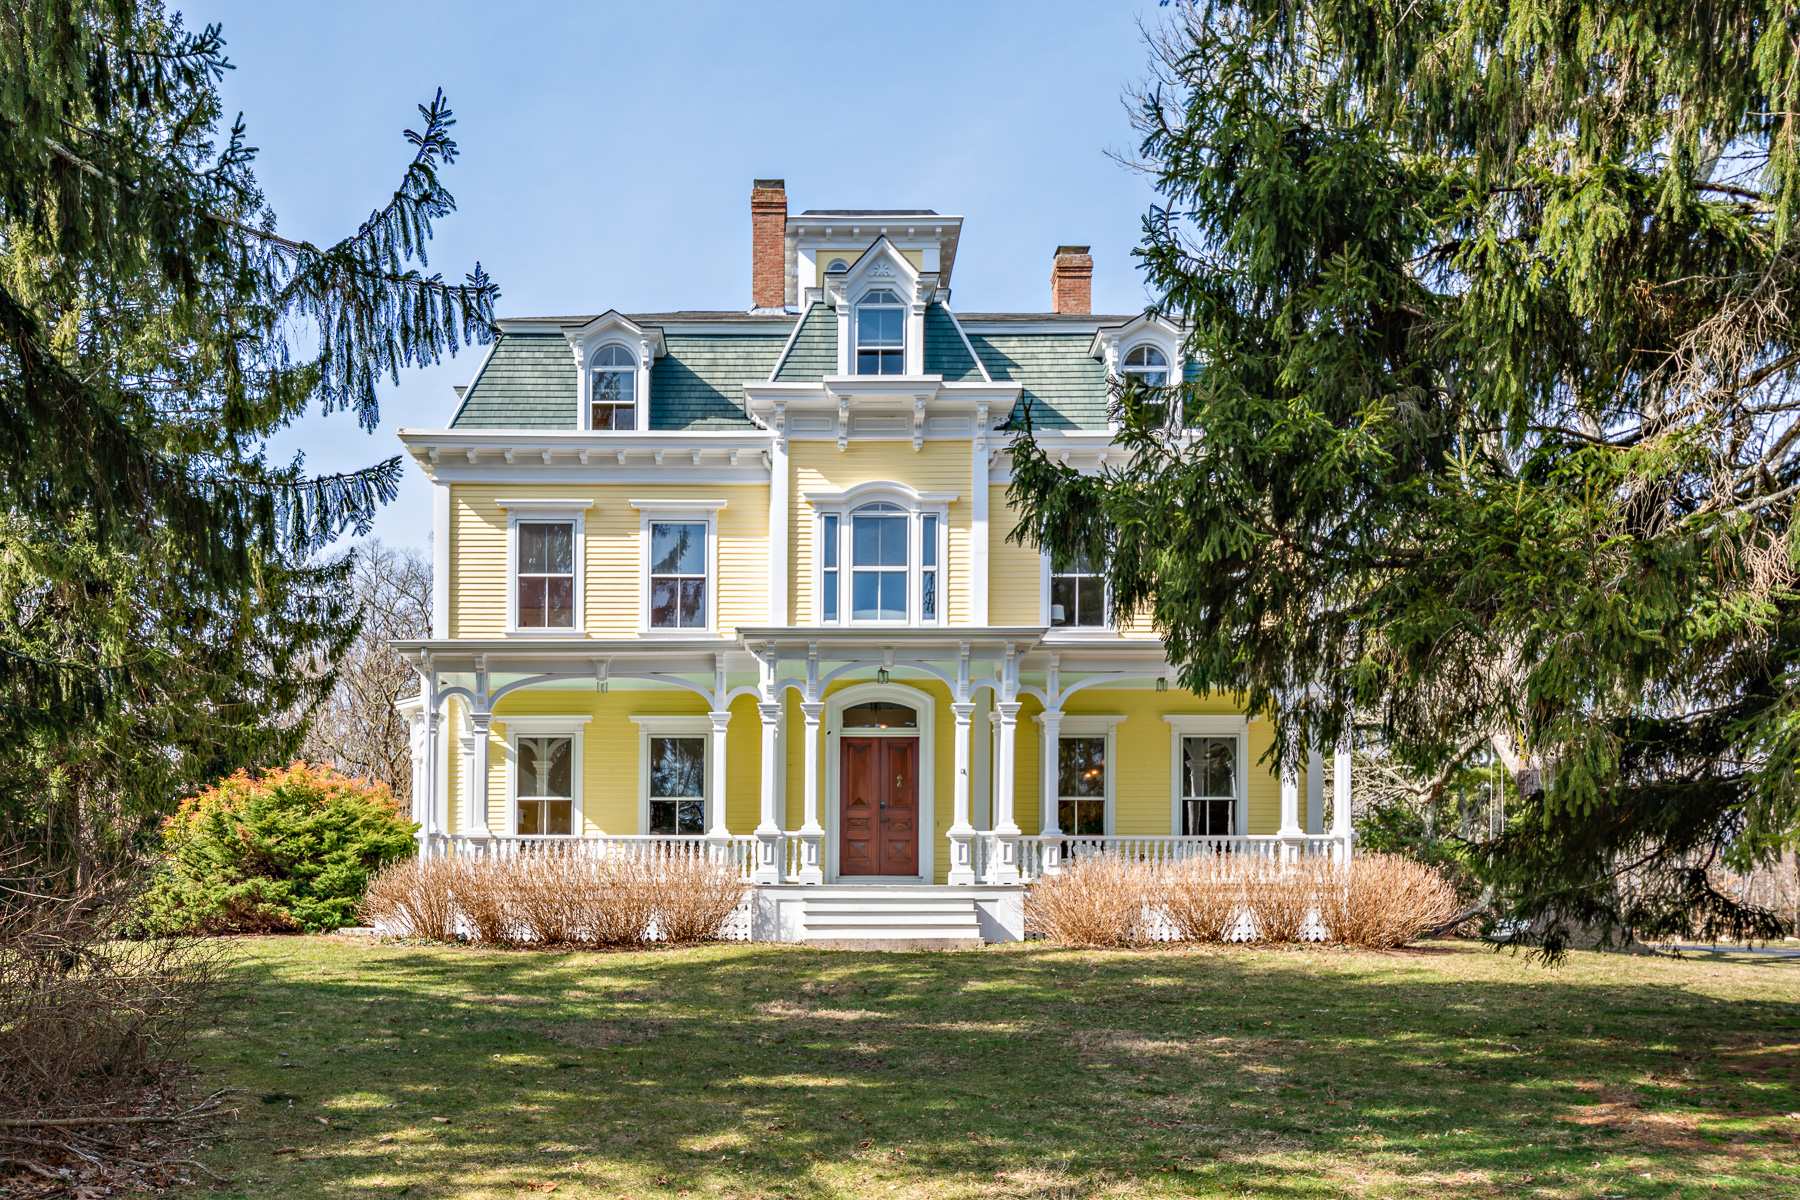 Single Family Homes for Sale at William Whitredge Estate 285 Stone Church Road Tiverton, Rhode Island 02878 United States